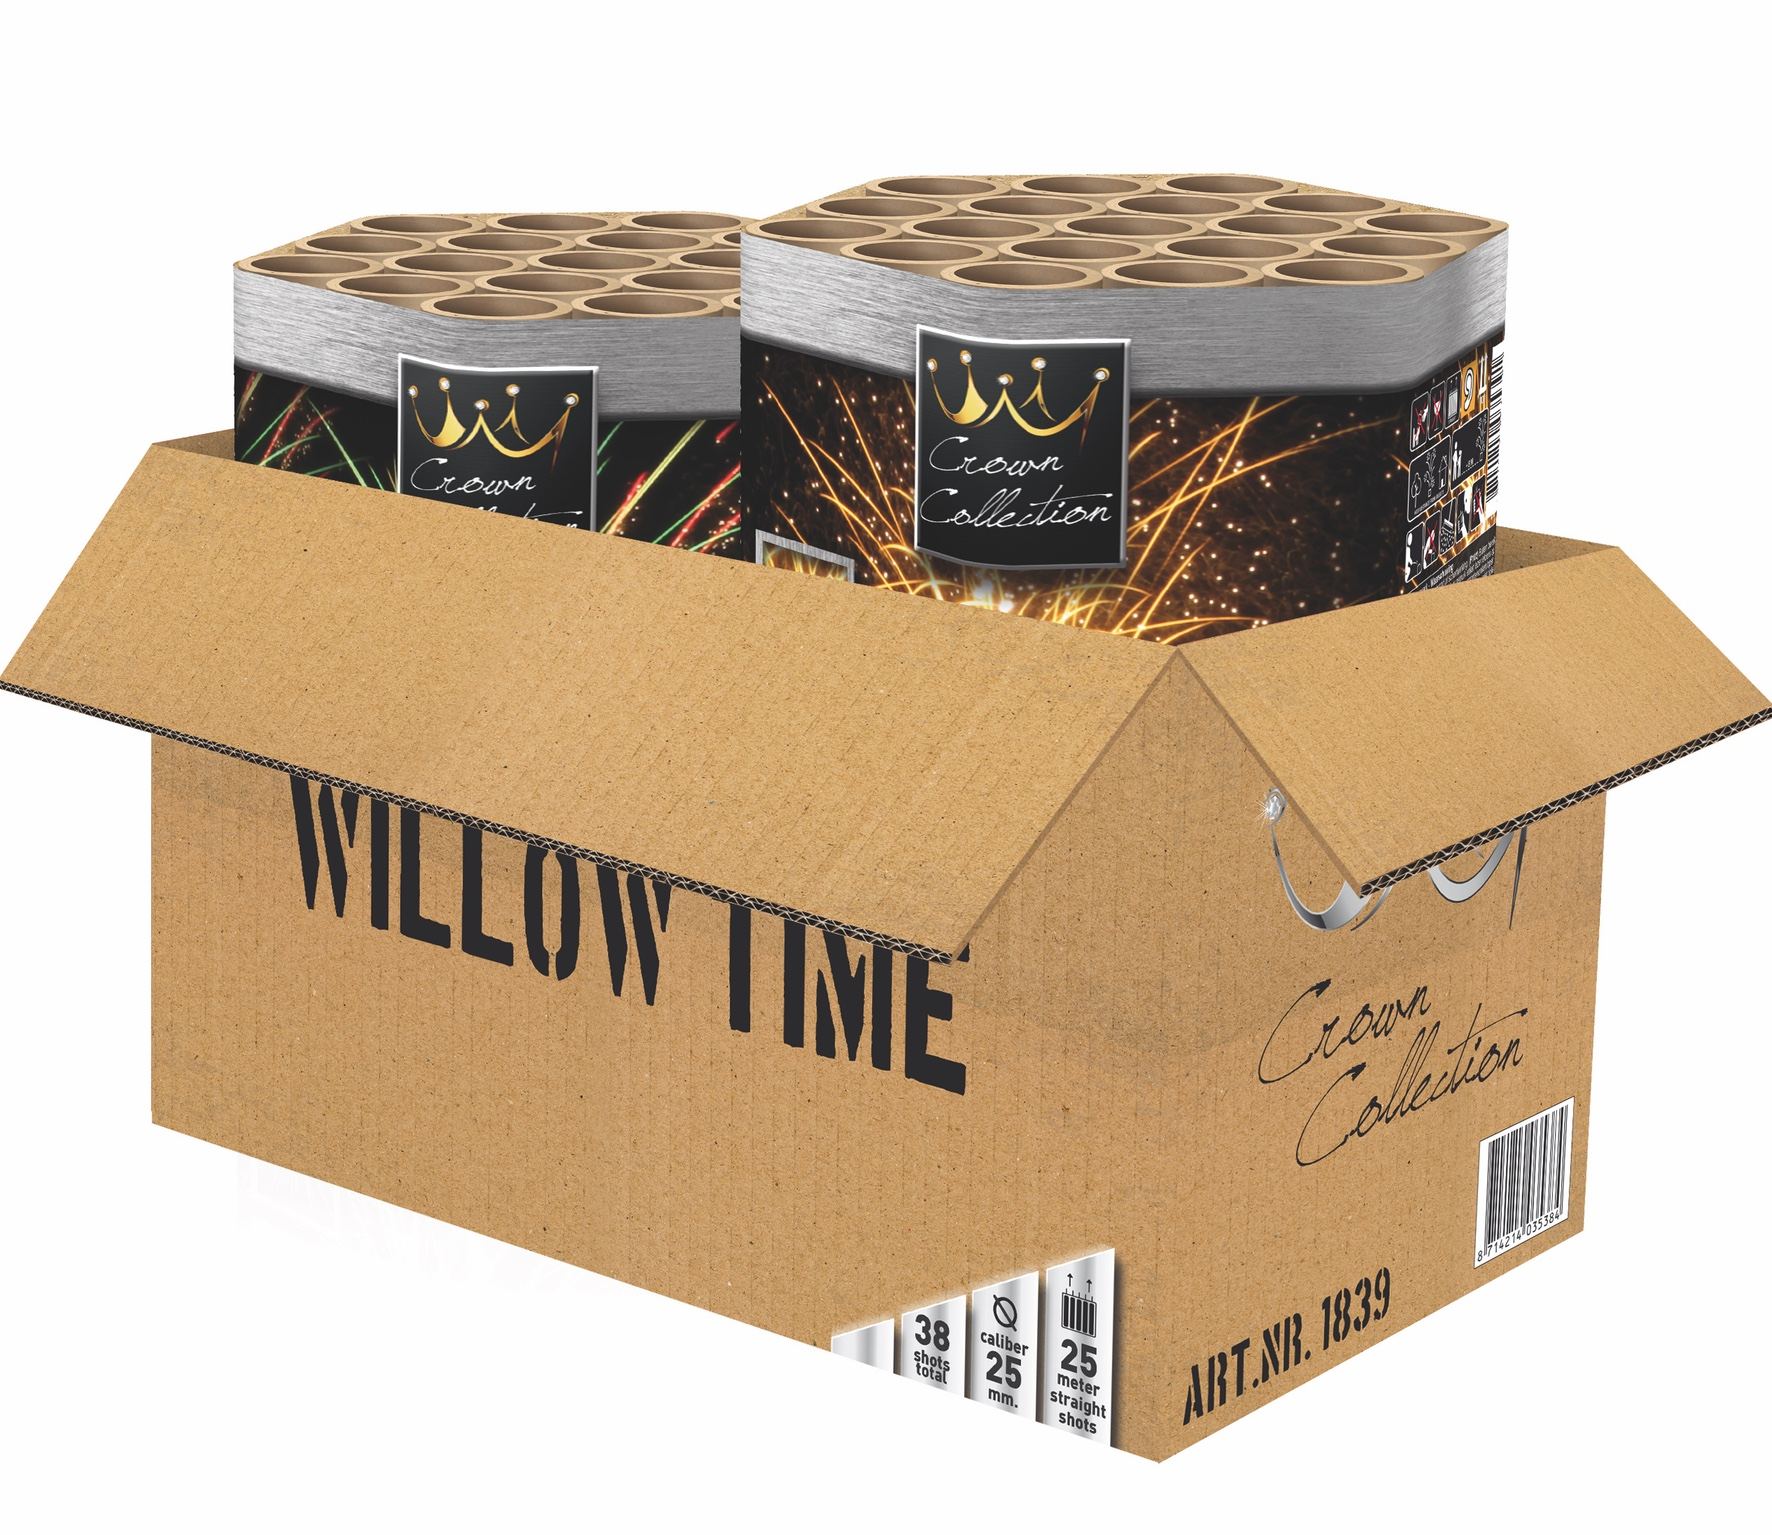 Willow Time 2 cakes / 38 schoten